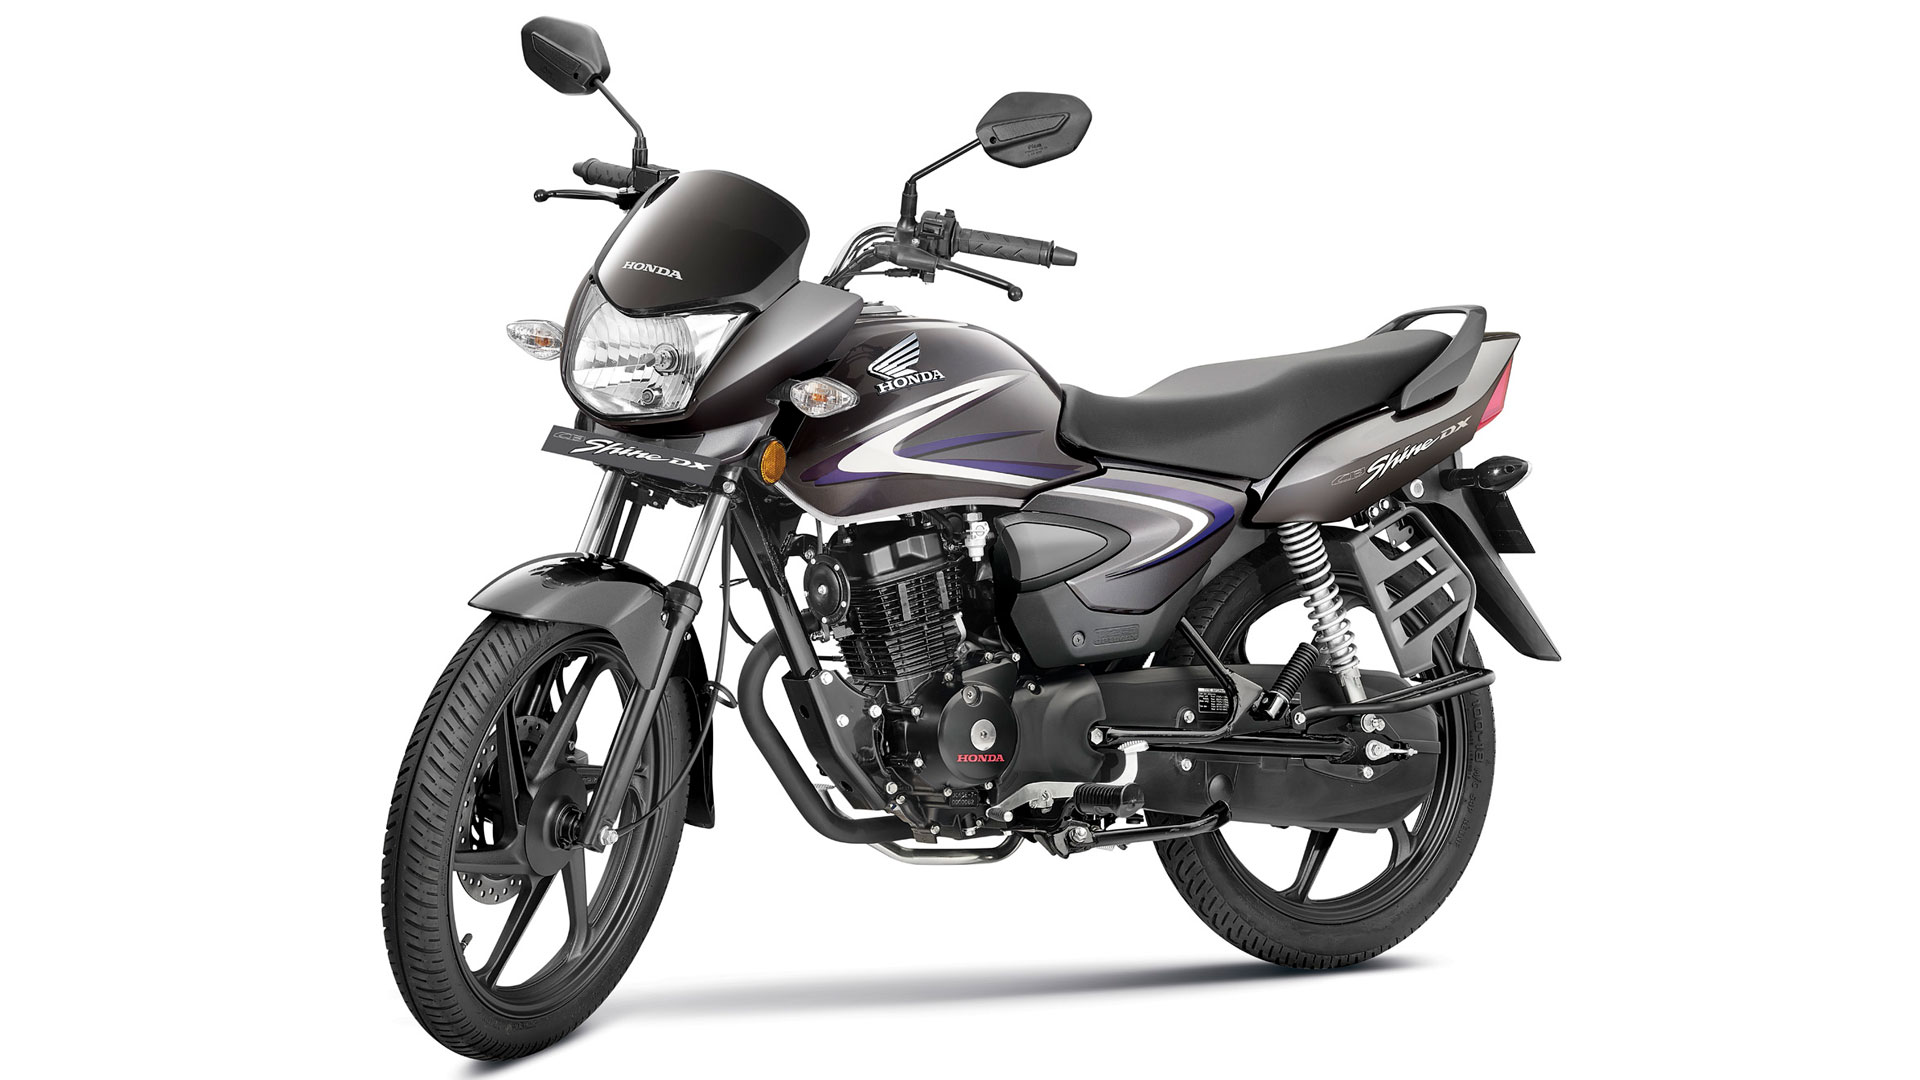 Honda Cb Shine 2017 Price Mileage Reviews